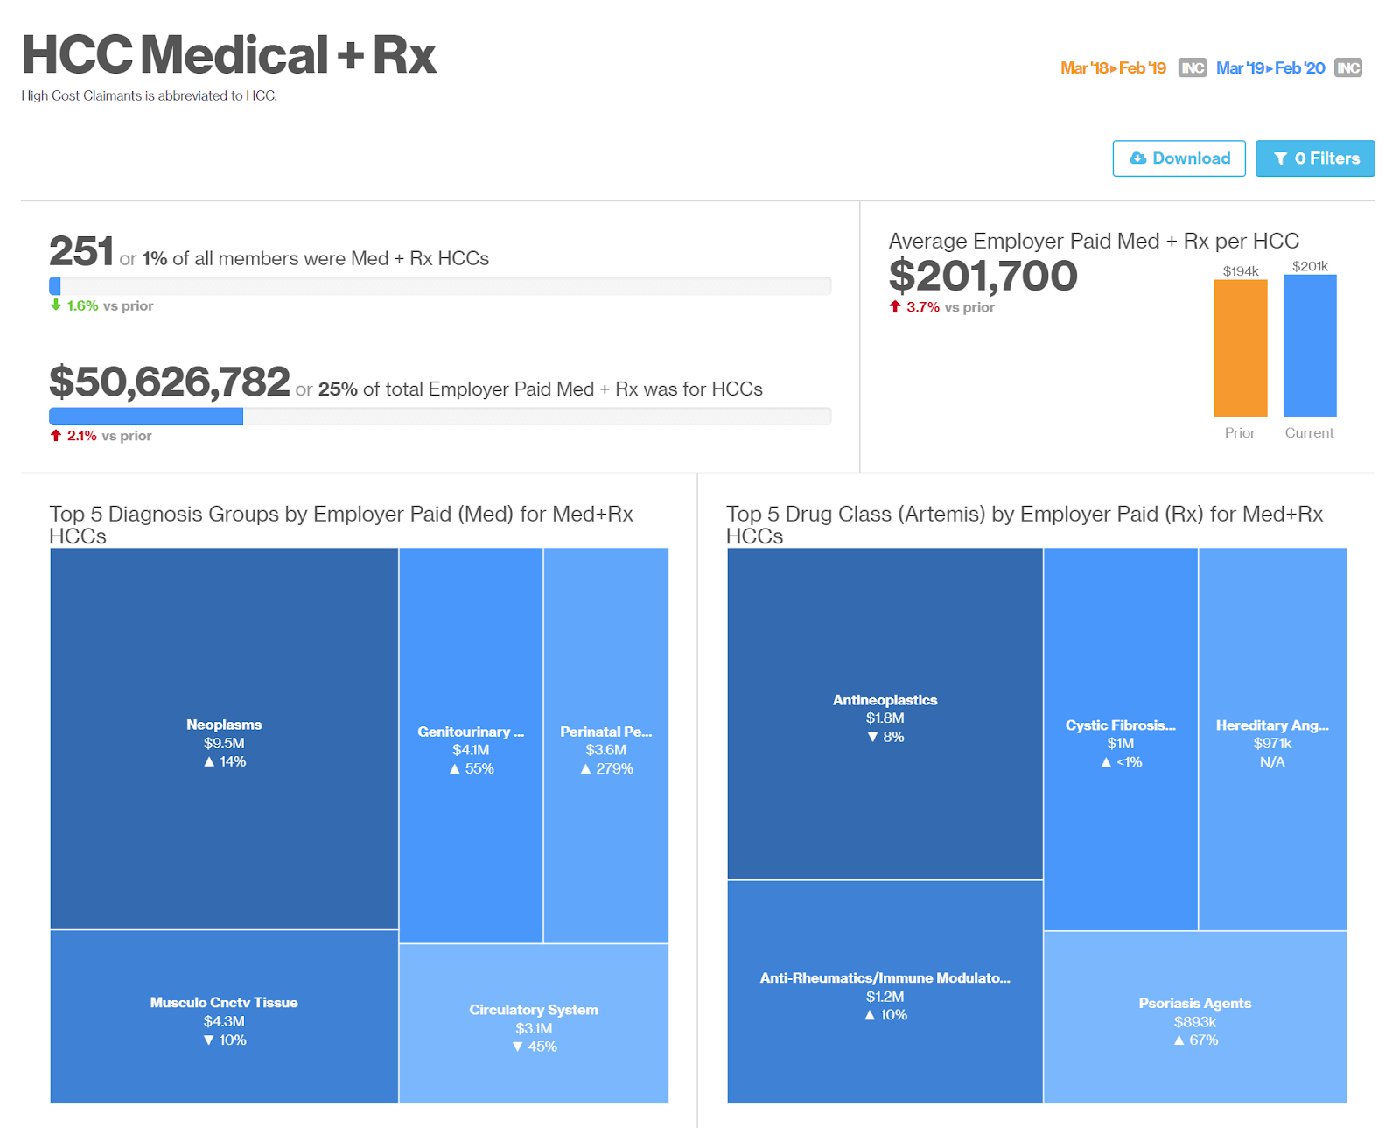 High Cost Claimants Medical and Rx dashboard